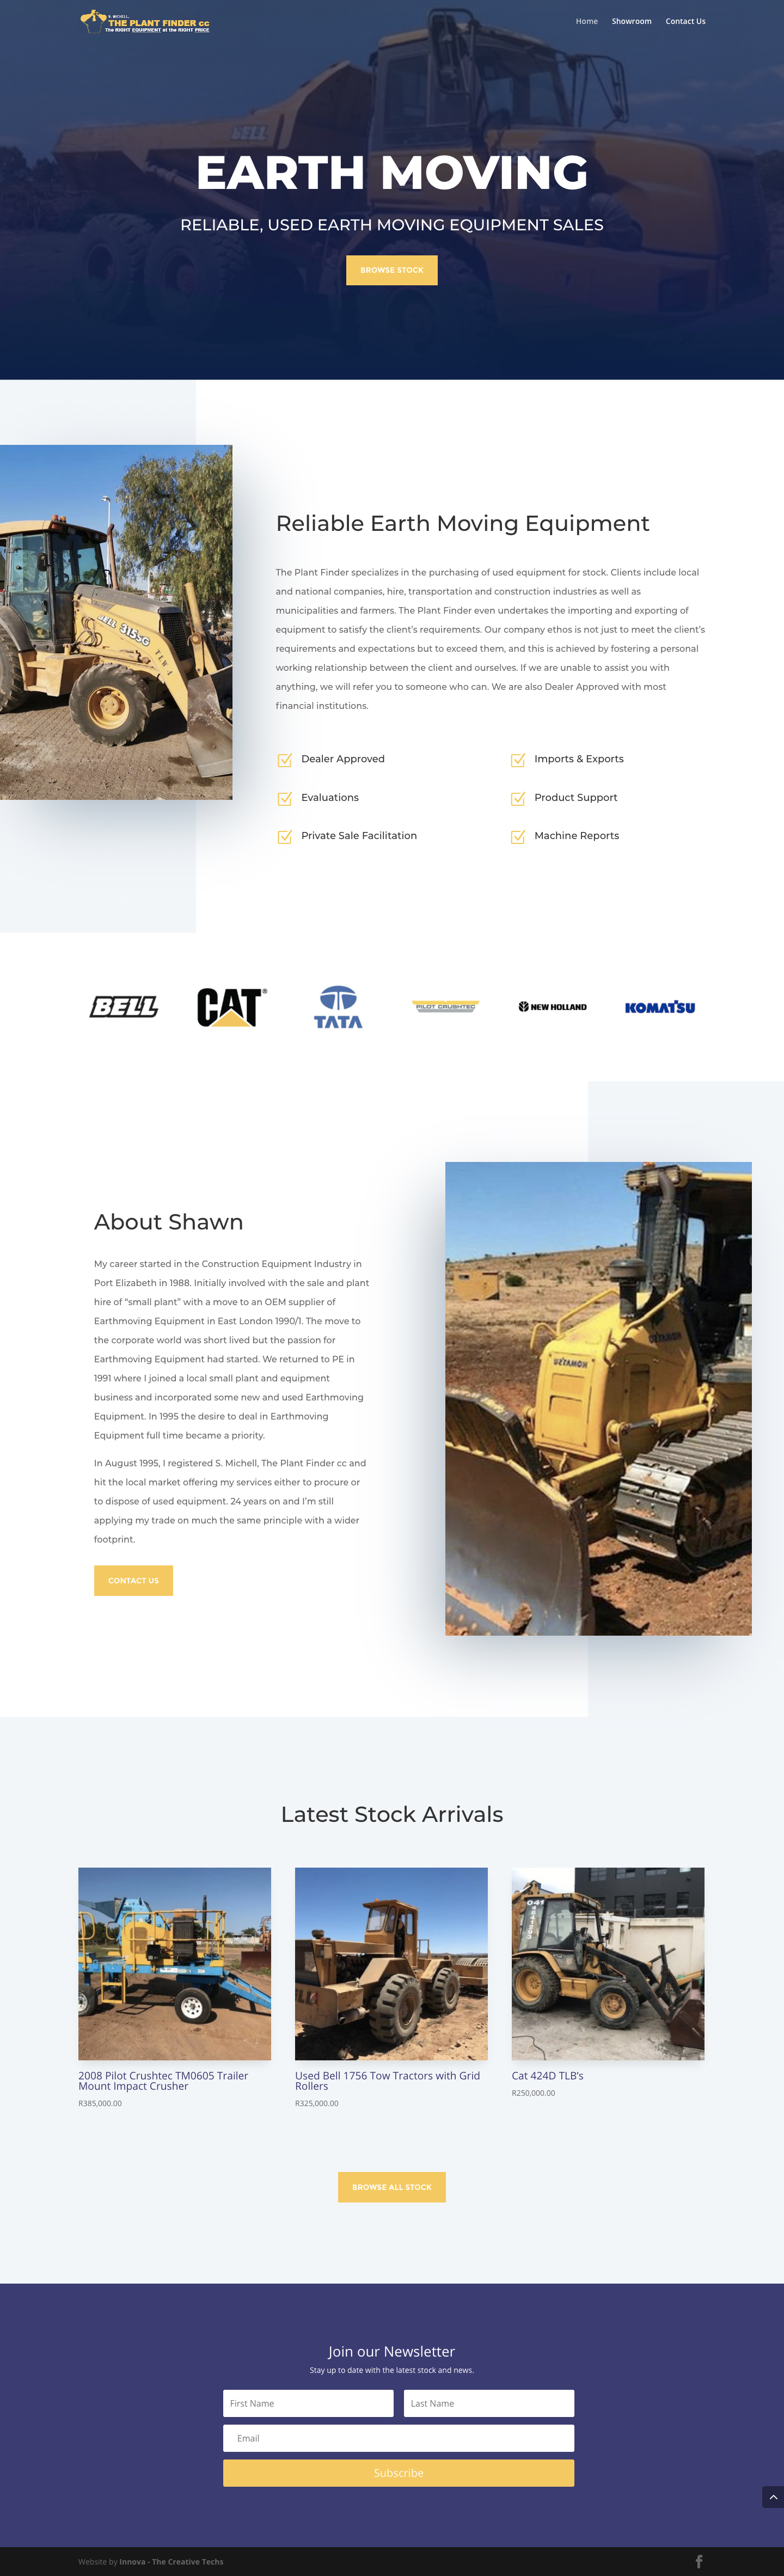 The Plantfinder Website Thumbnail